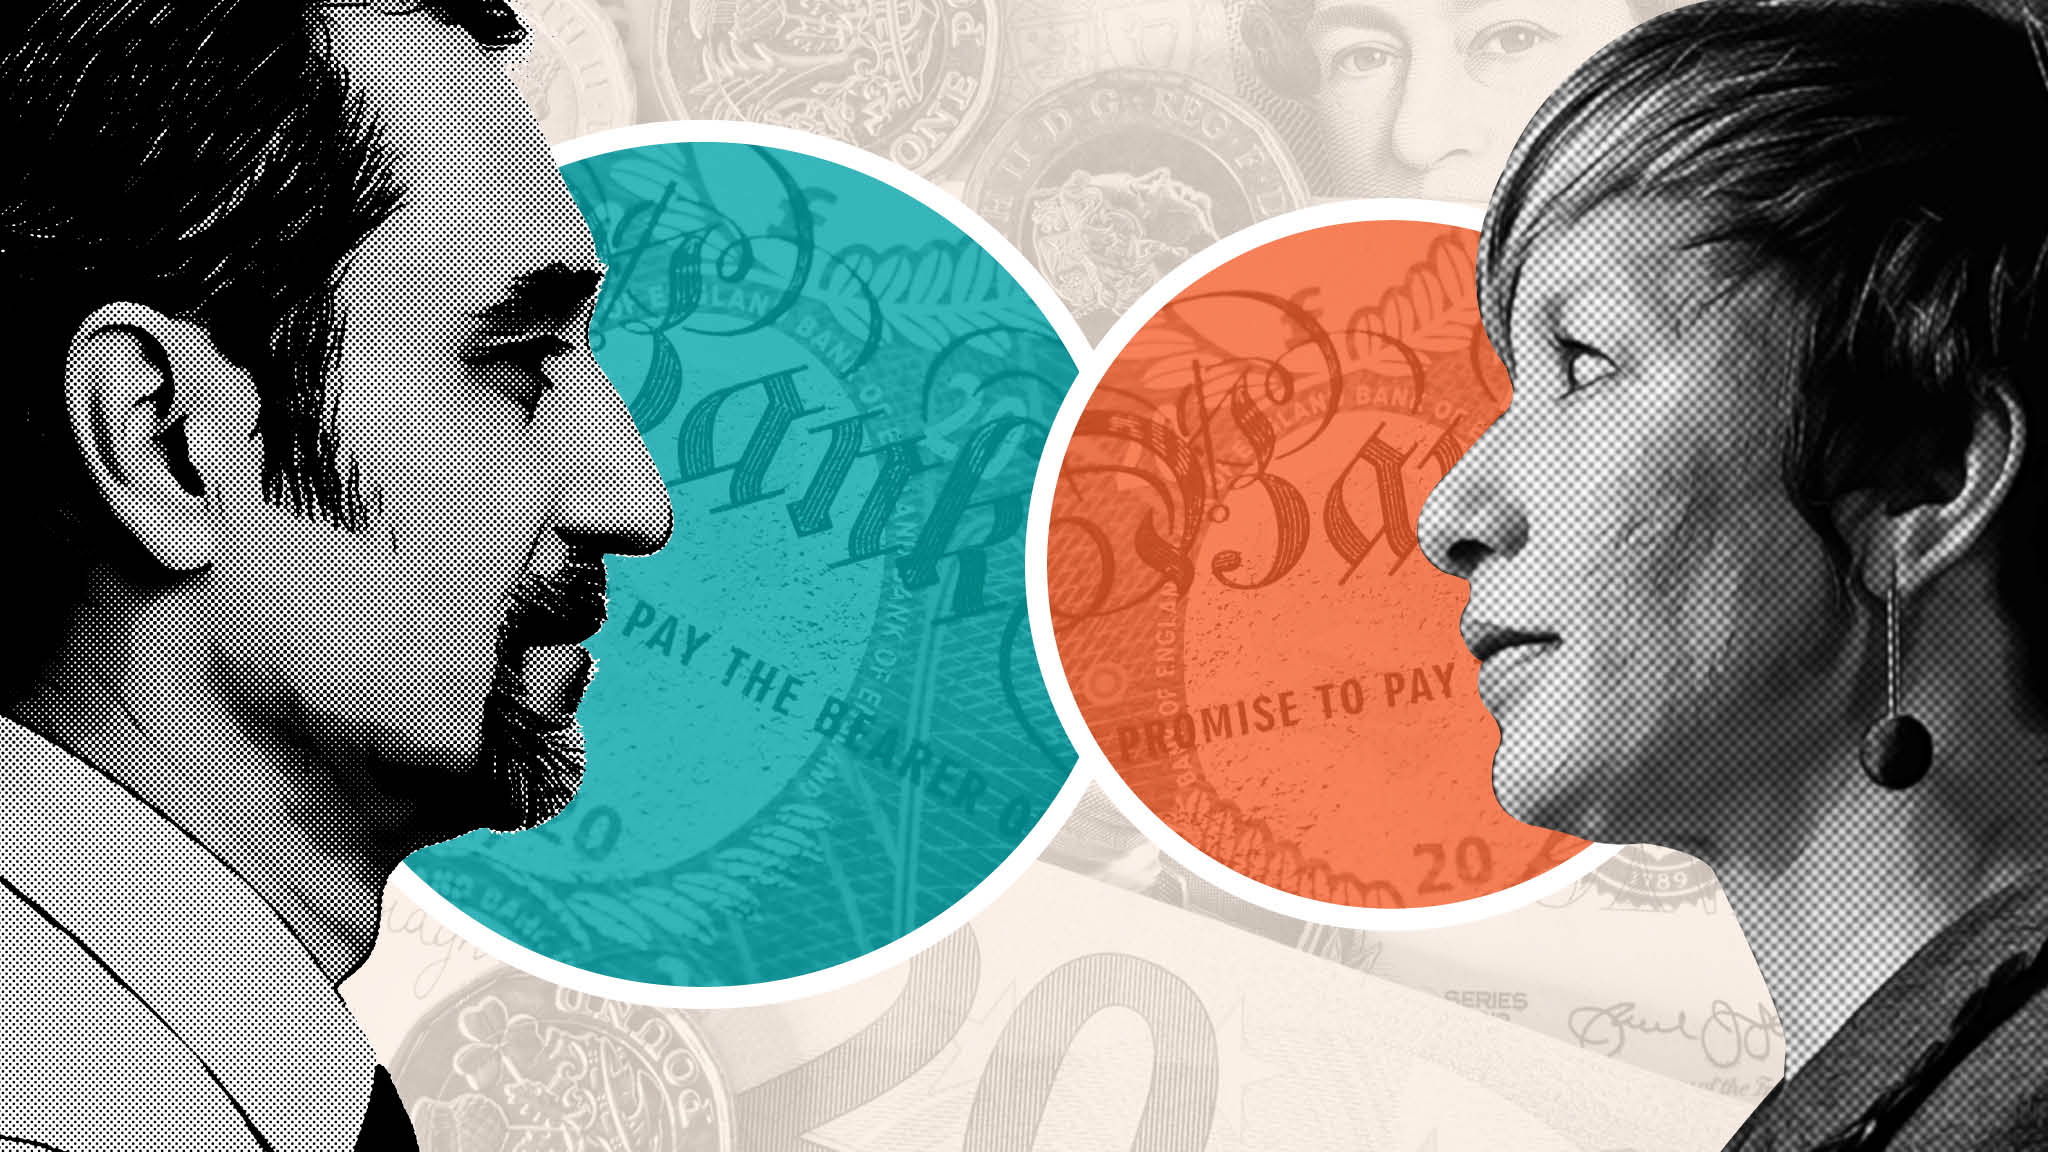 Why radical transparency about salaries can pay off